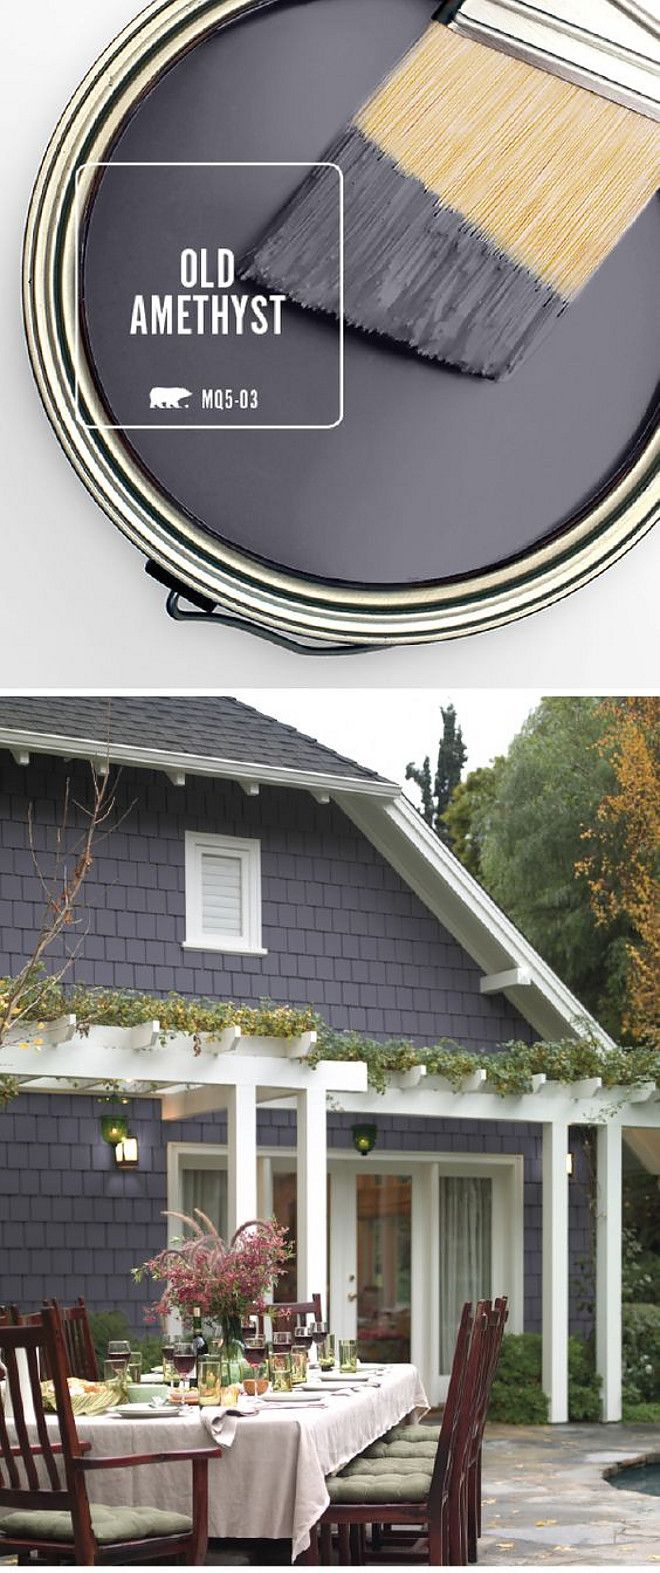 Delightful Designer Paint Color Pick Best Dark Grey Exterior Paint Color Behr Old  Amethyst. I Would Like This As A Trim Color With White Or Off White.